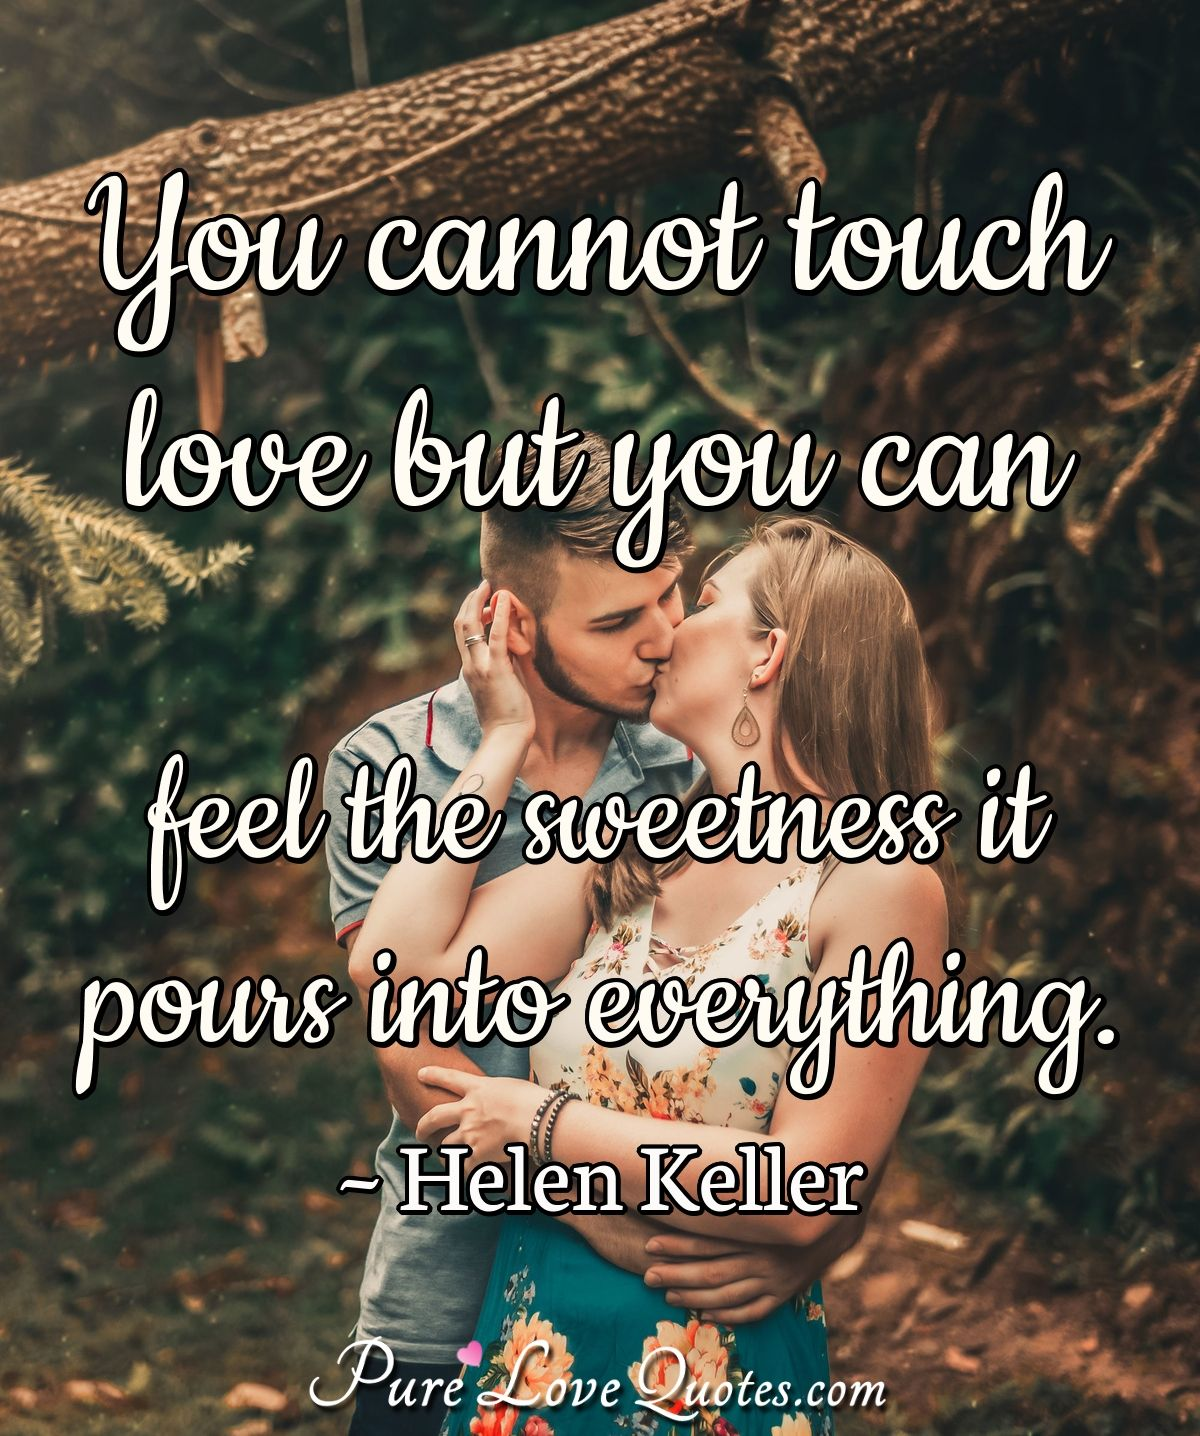 You cannot touch love but you can feel the sweetness it pours into everything. - Helen Keller